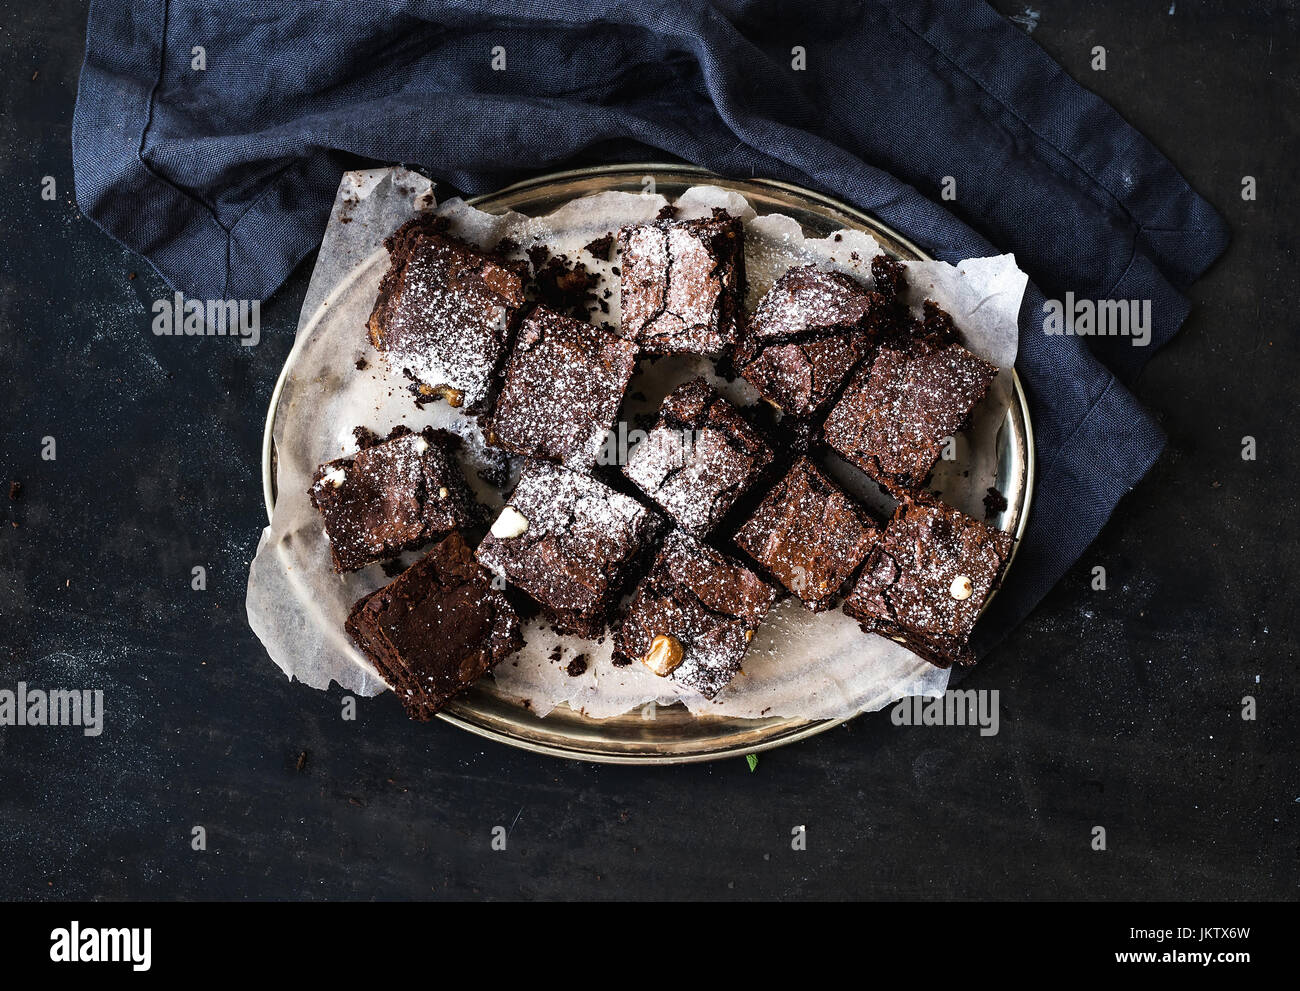 Dark chocolate and walnut brownie squares on a silver tray - Stock Image